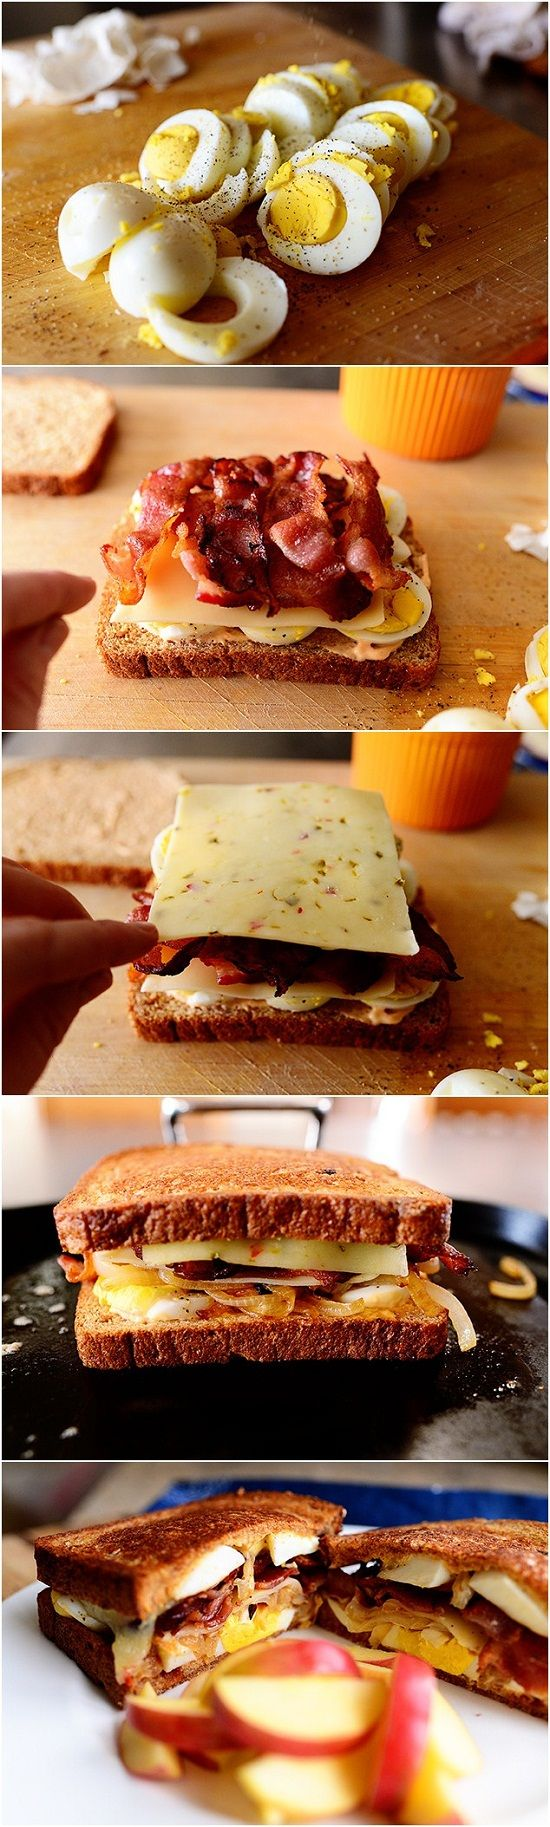 Ultimate Grilled Cheese Sandwich Recipe...looks delightfully unhealthy =):